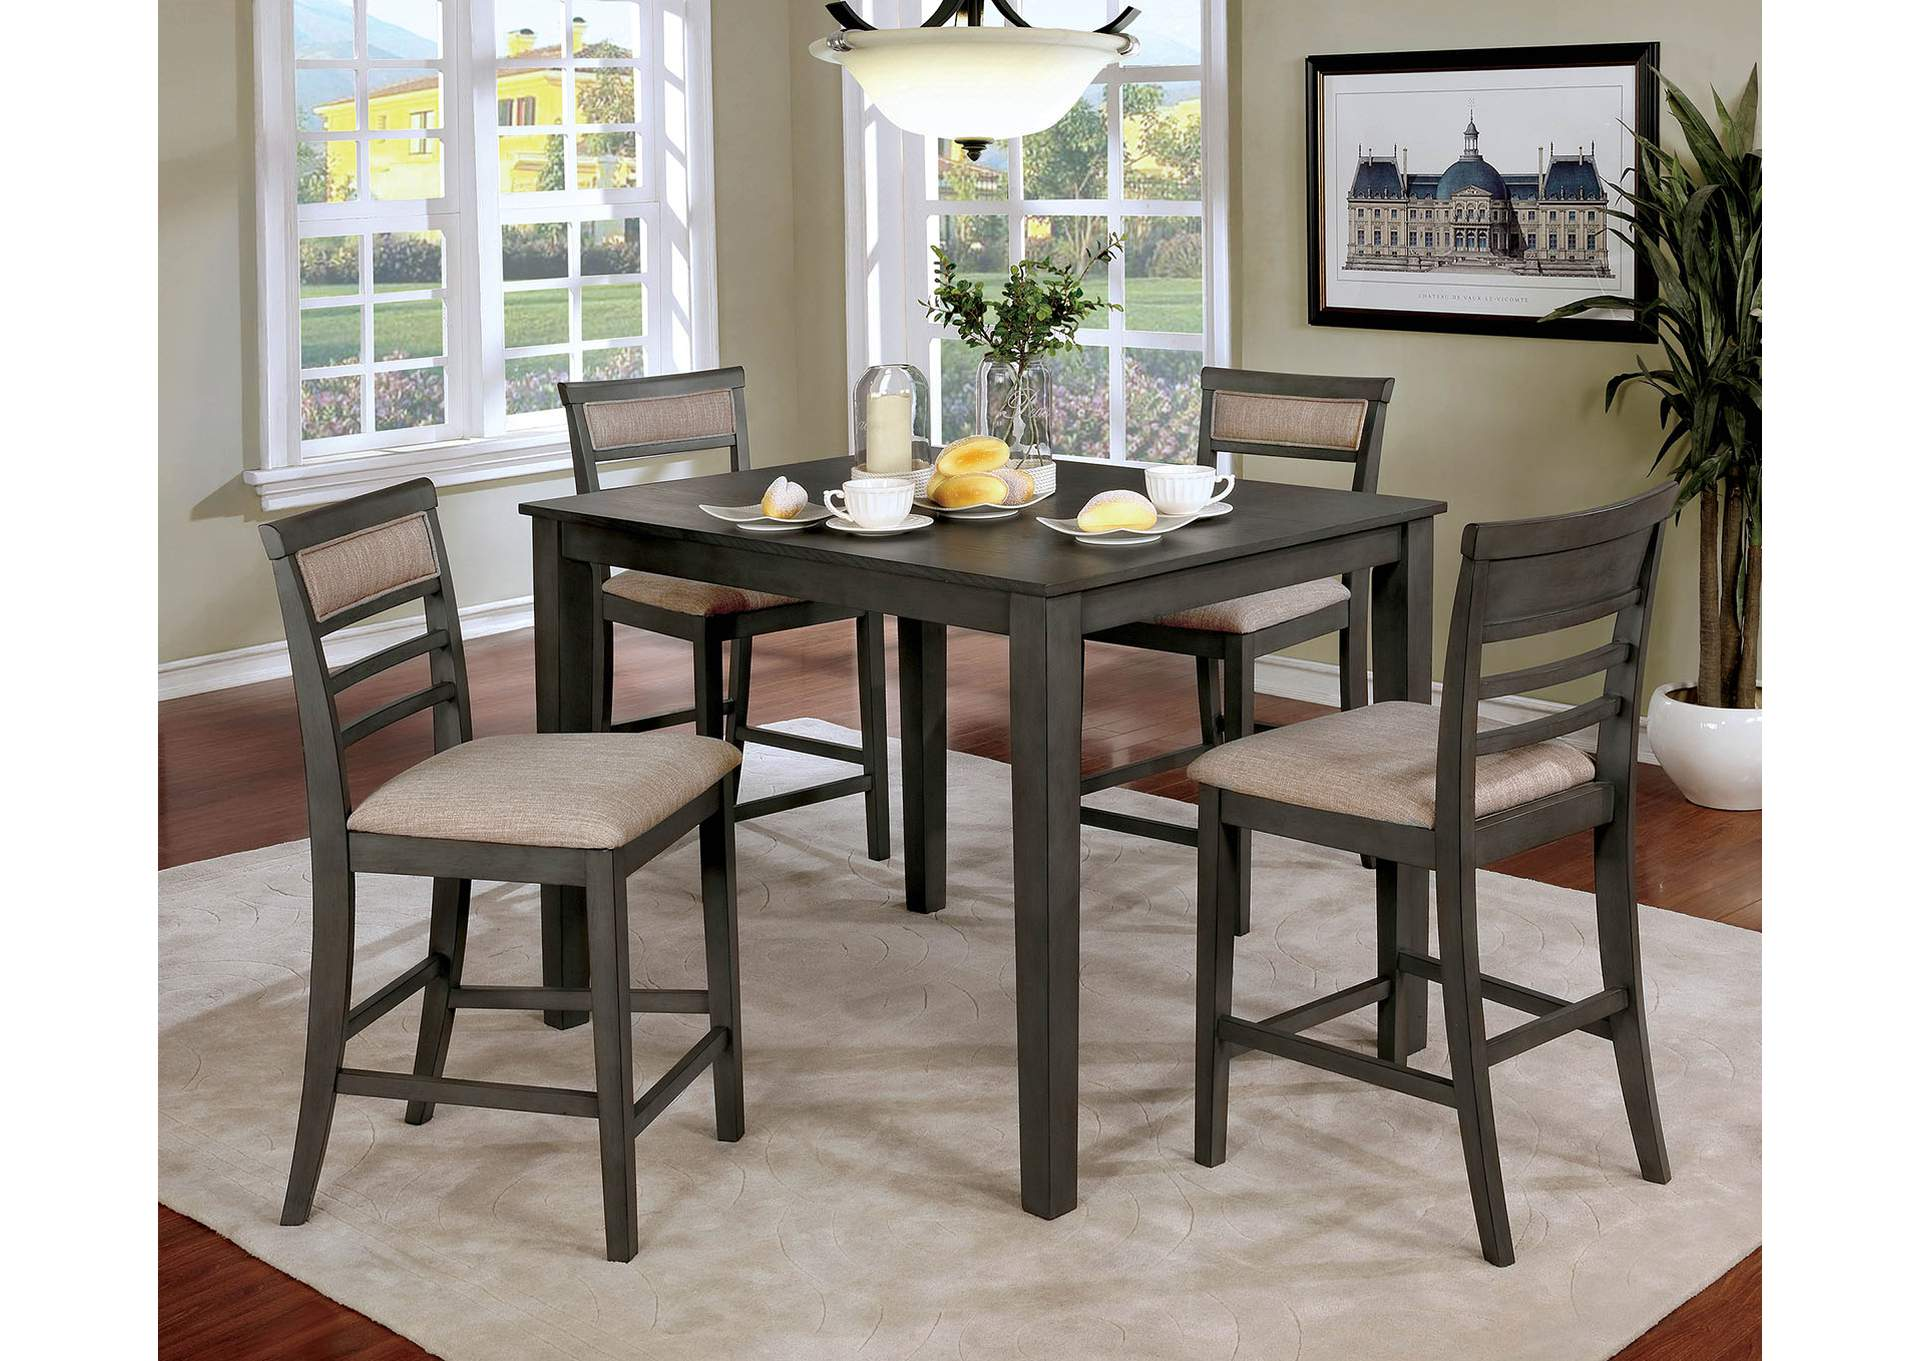 Fafnir Gray 5 Piece Counter Height Table Set,Furniture of America